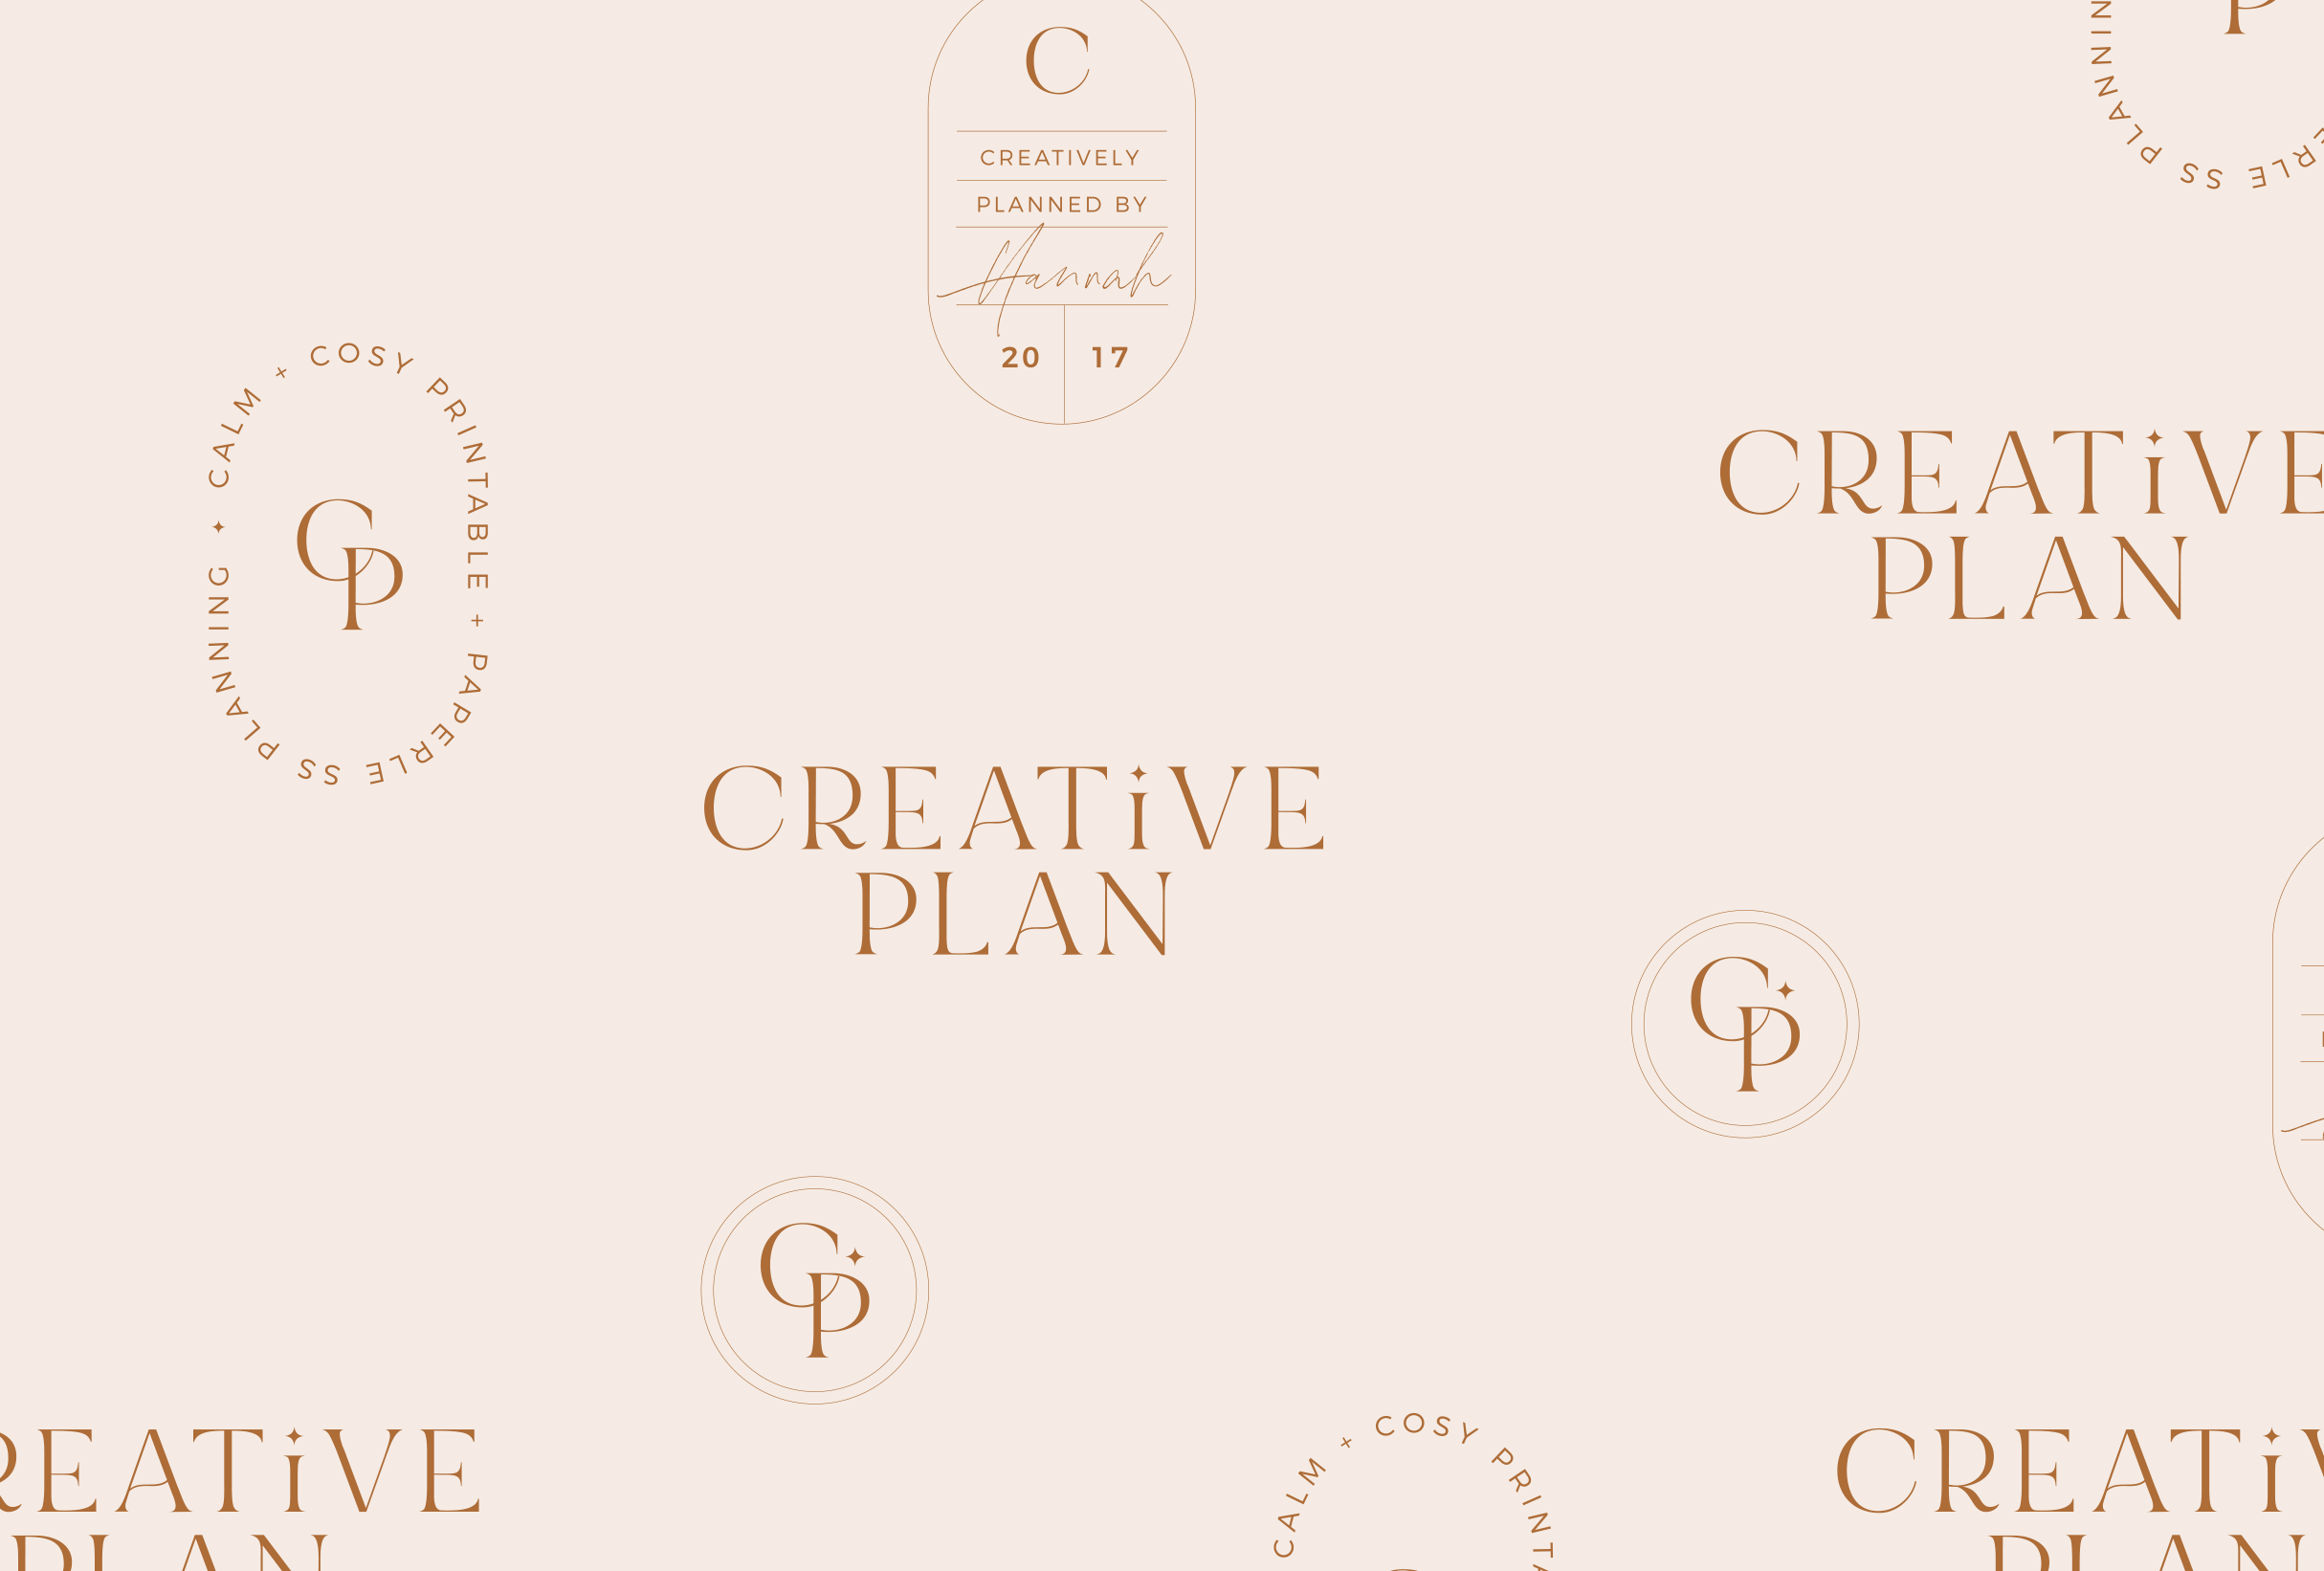 Logo design pattern for Creative Plan, providing paperless planning products with an analogue feel - designed by Wiltshire-based graphic designer, Kaye Huett